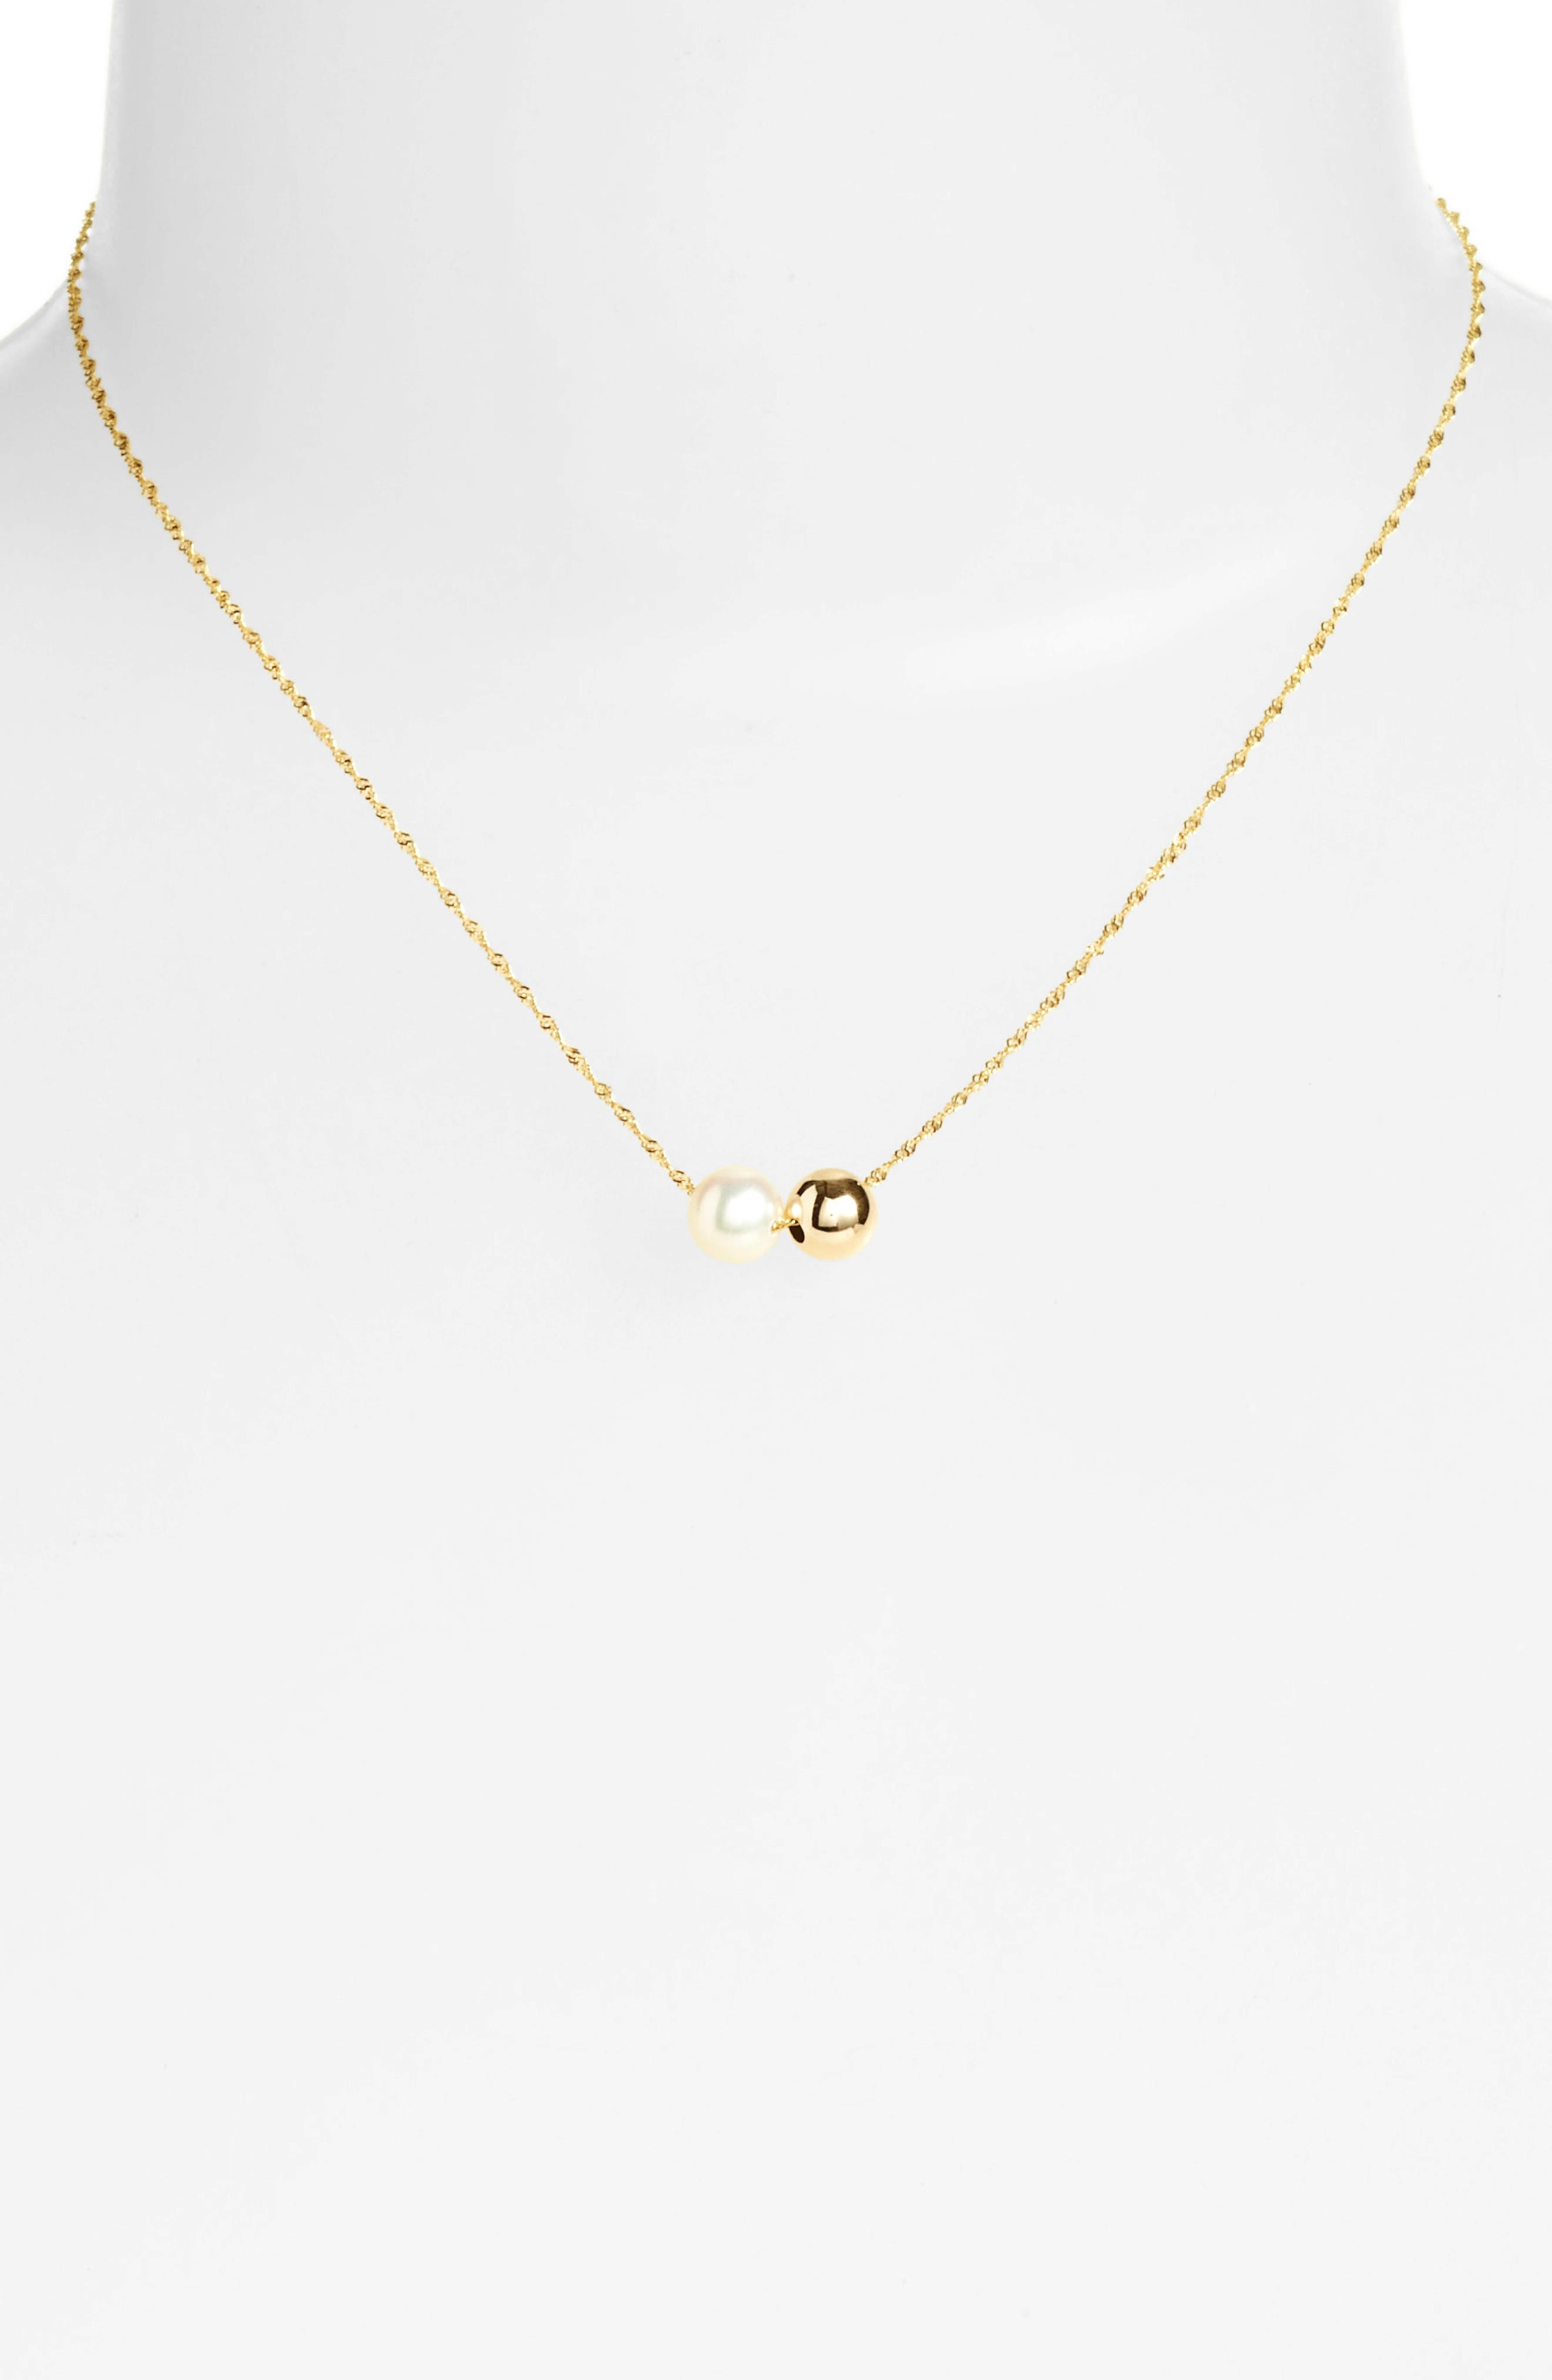 Duo Pearl Pendant Necklace,                             Alternate thumbnail 2, color,                             710